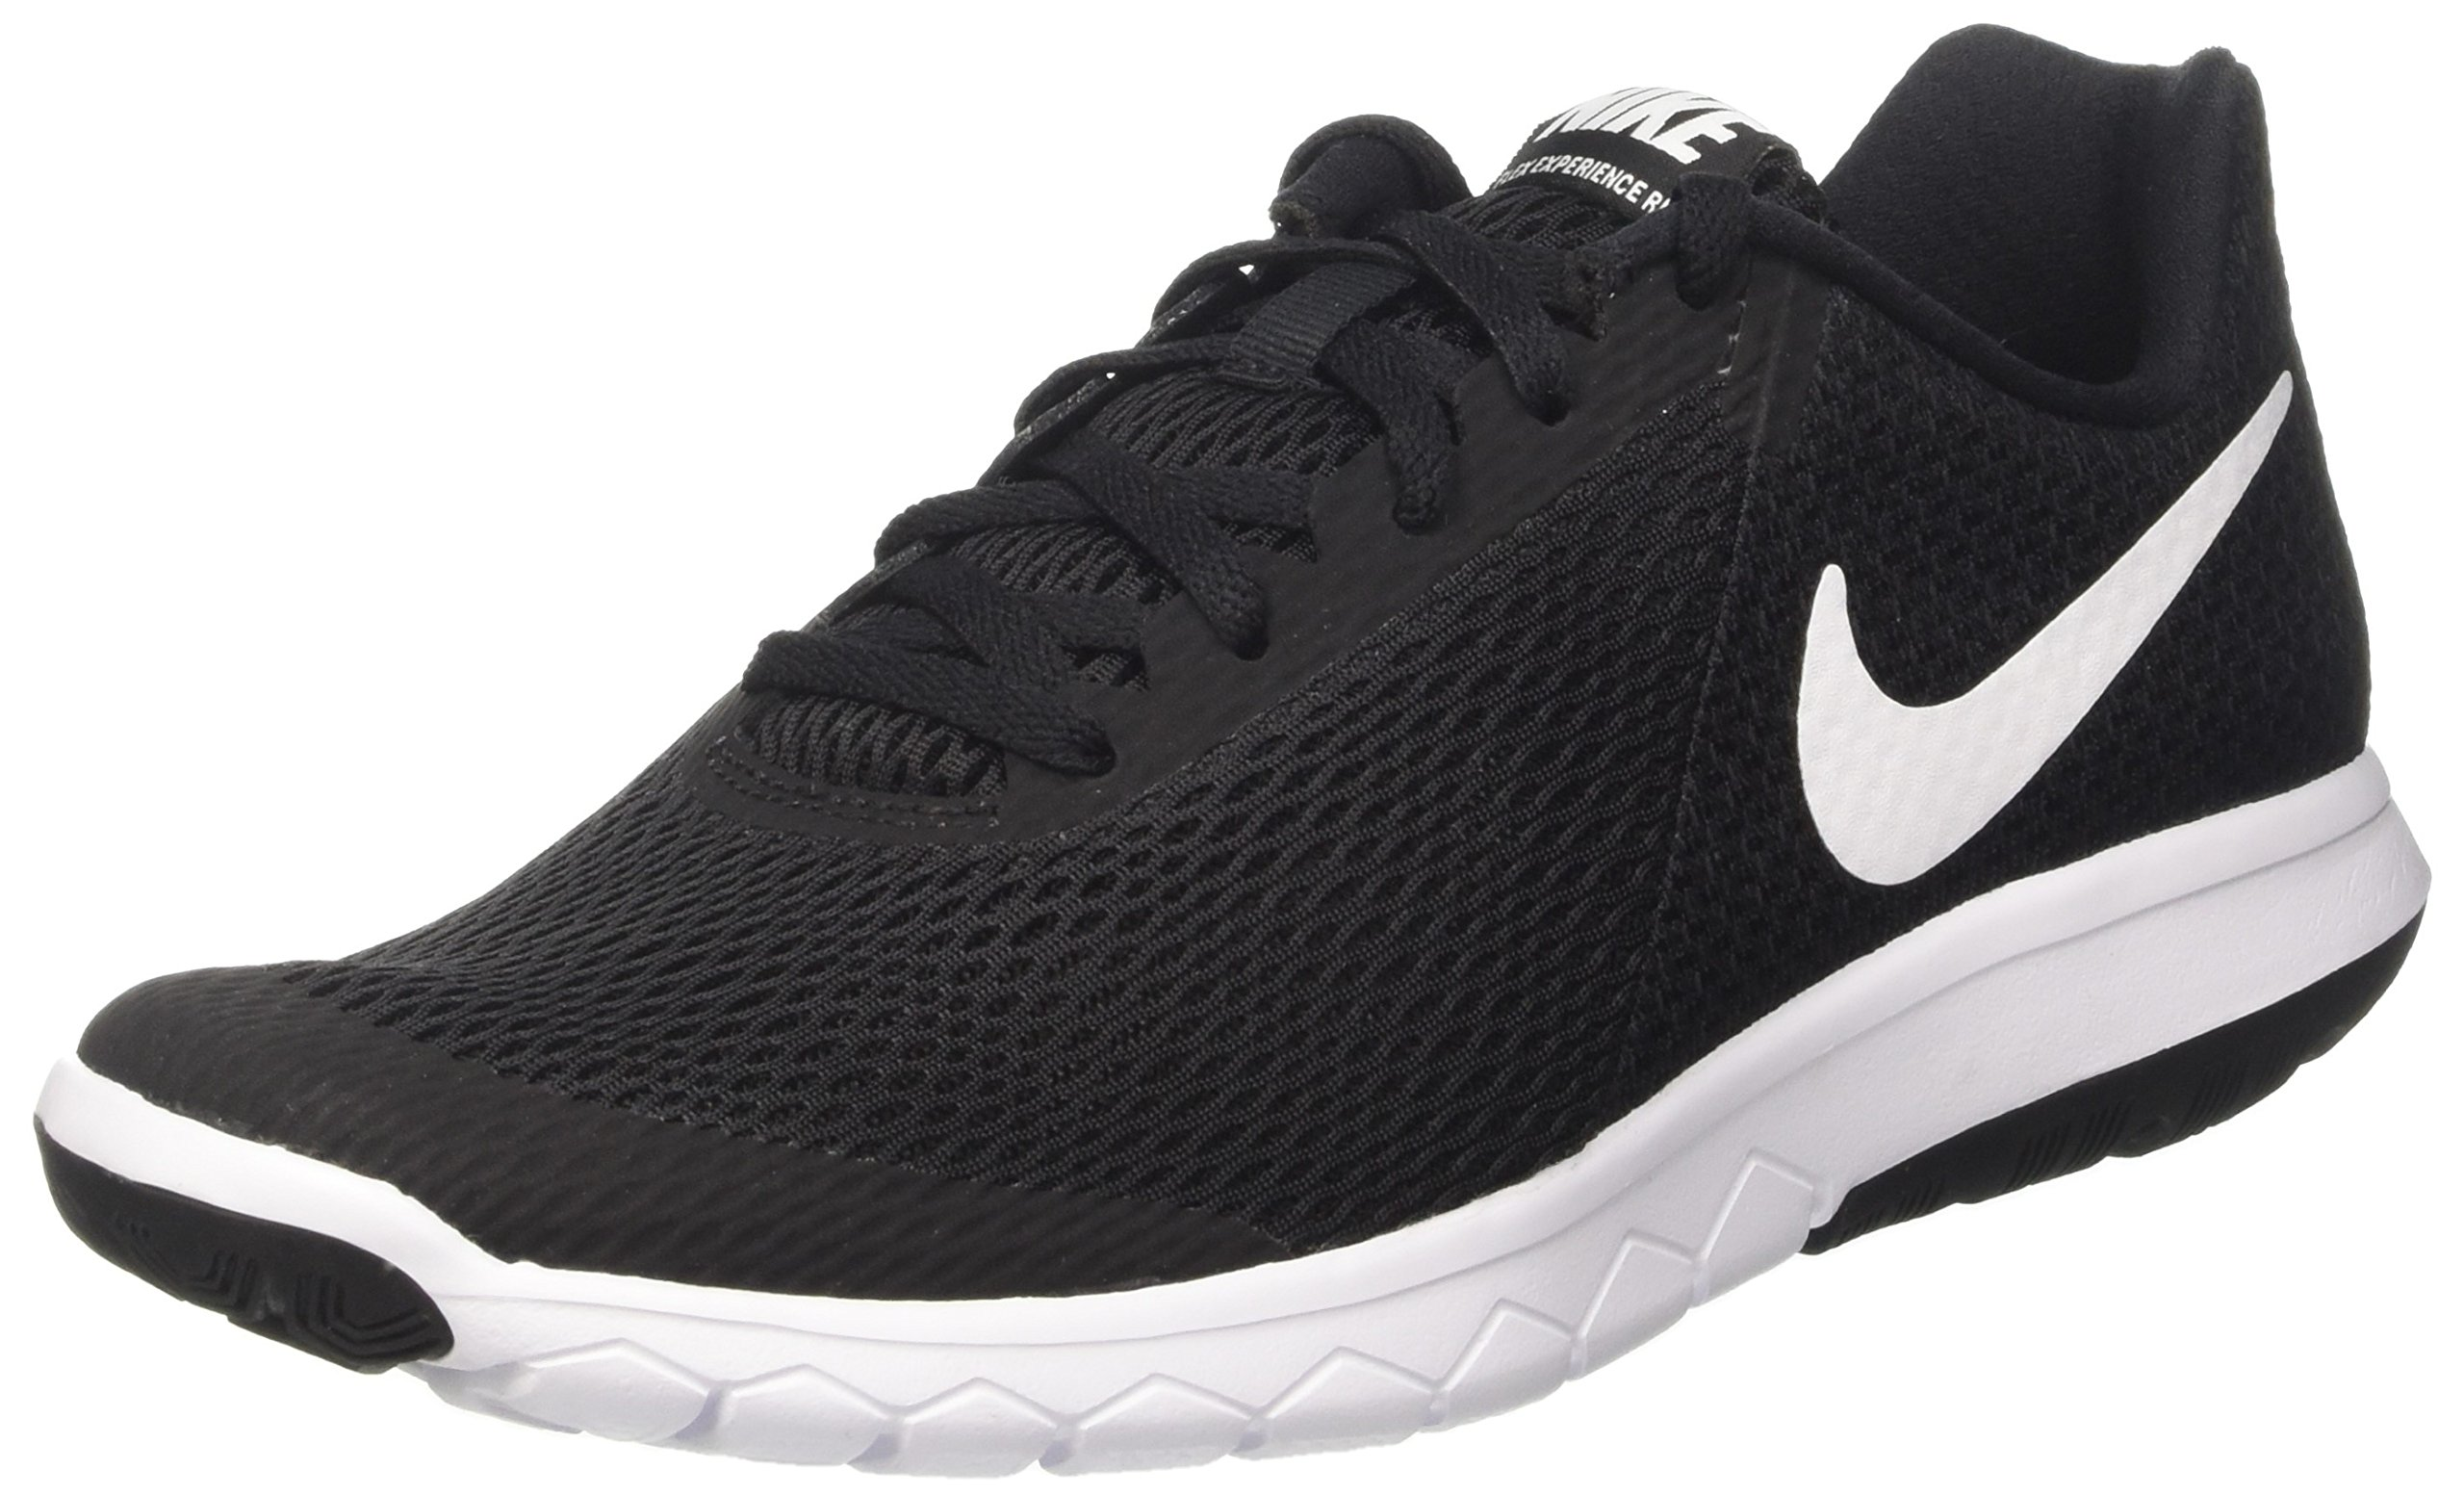 Nike Womens Flex Experience RN 6 Running Shoe Black/White 7